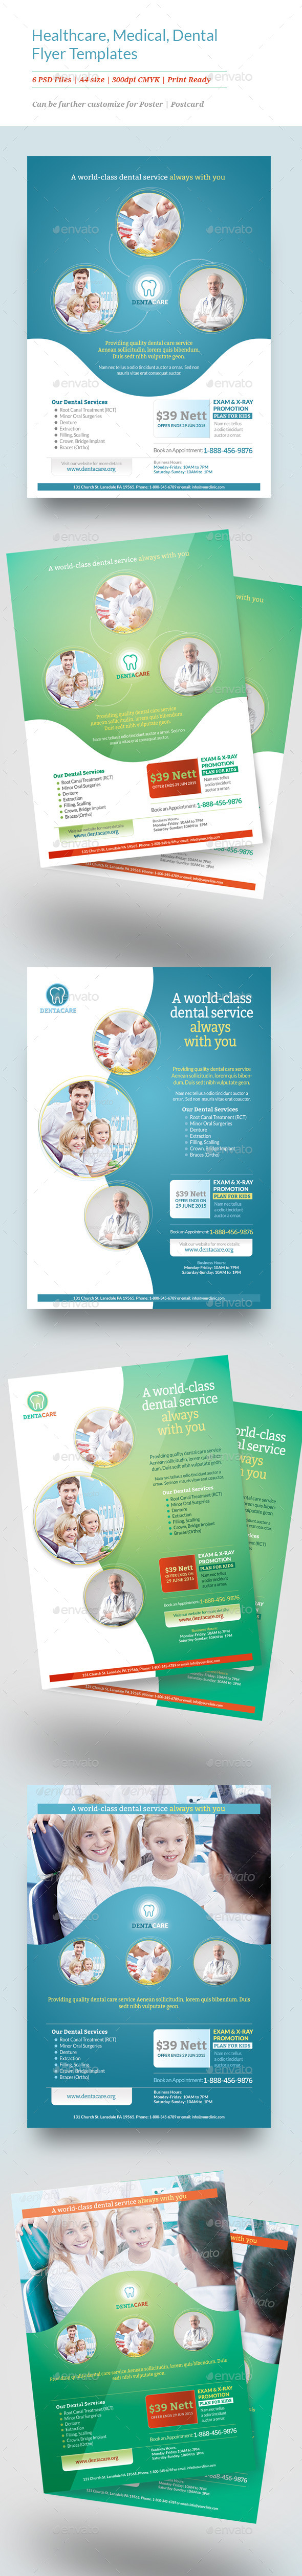 GraphicRiver Healthcare Medical Dental Flyer Templates 11515858